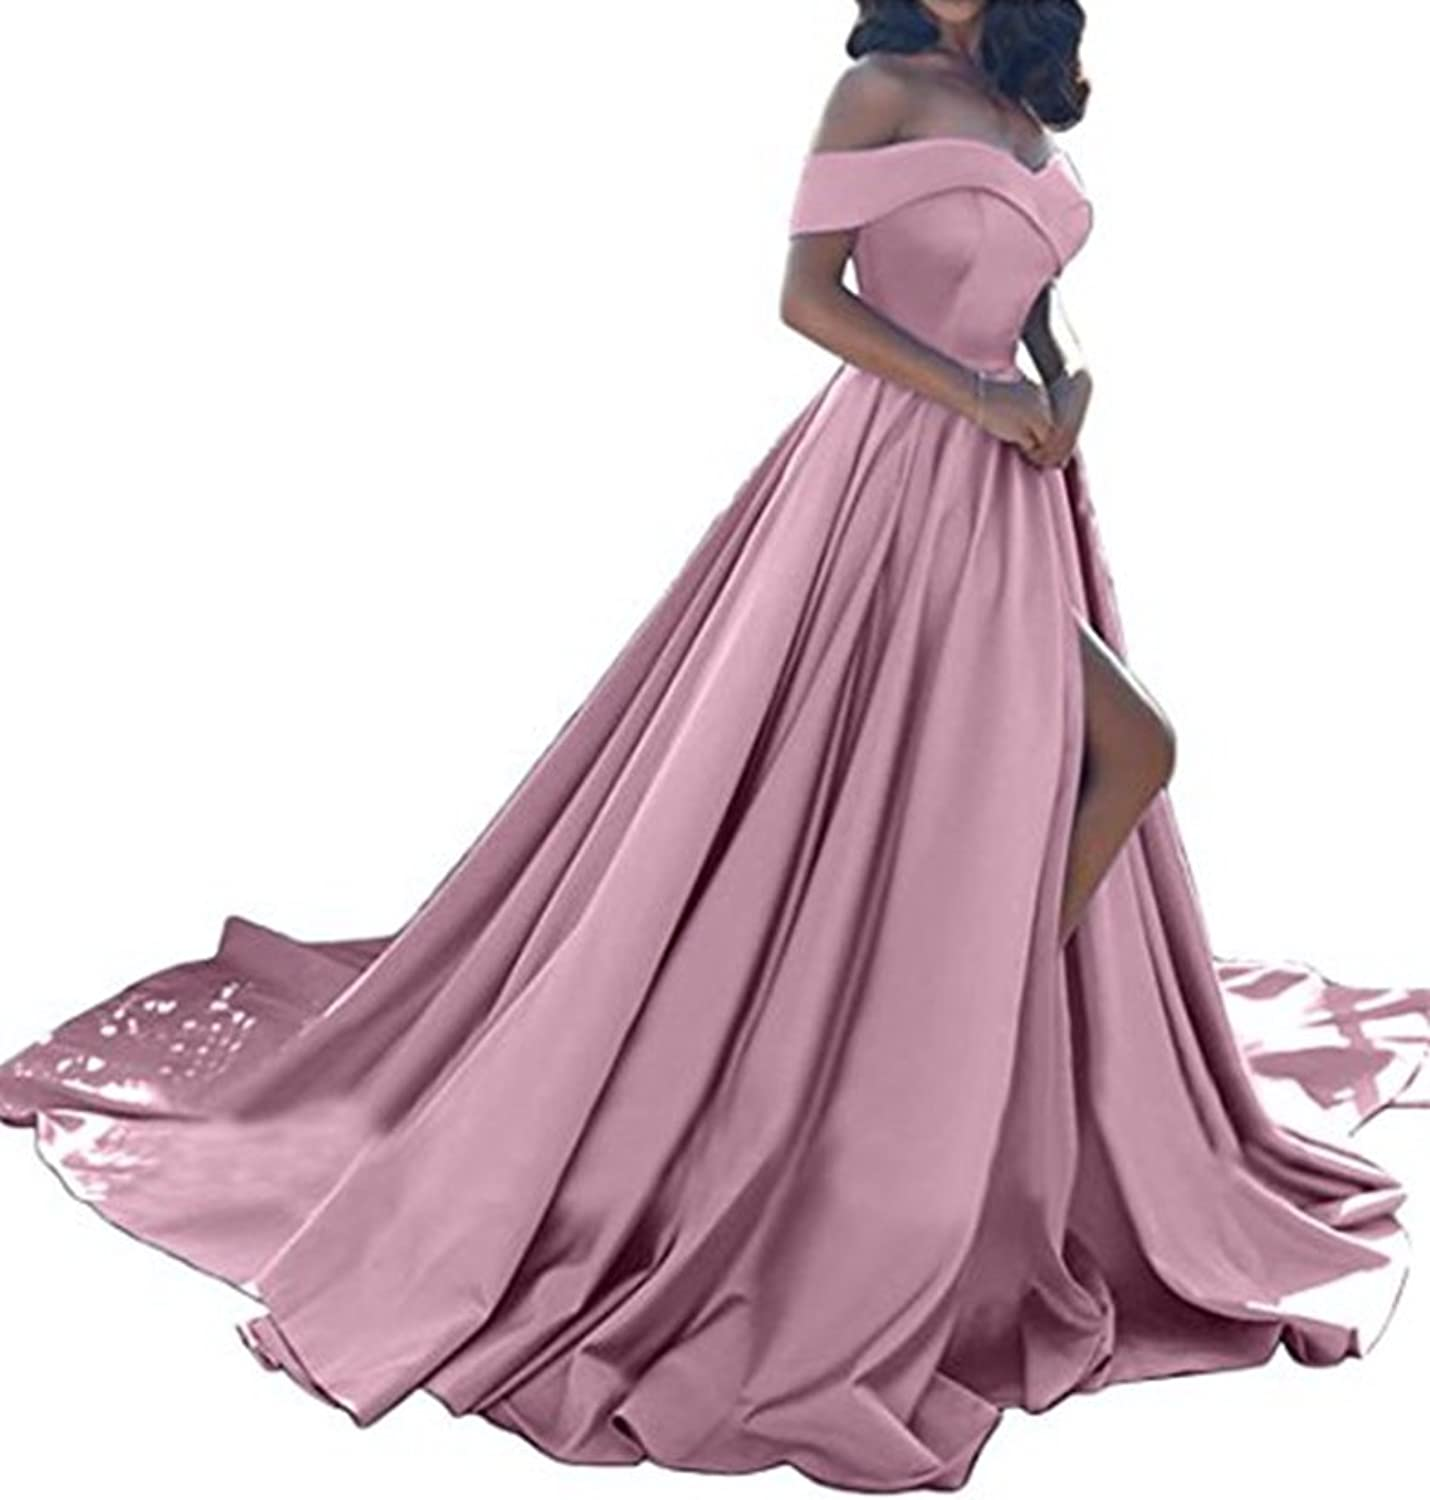 Jdress Women's Off The Shoulder A Line Prom Homecoming Dress with Split Long Evening Gowns